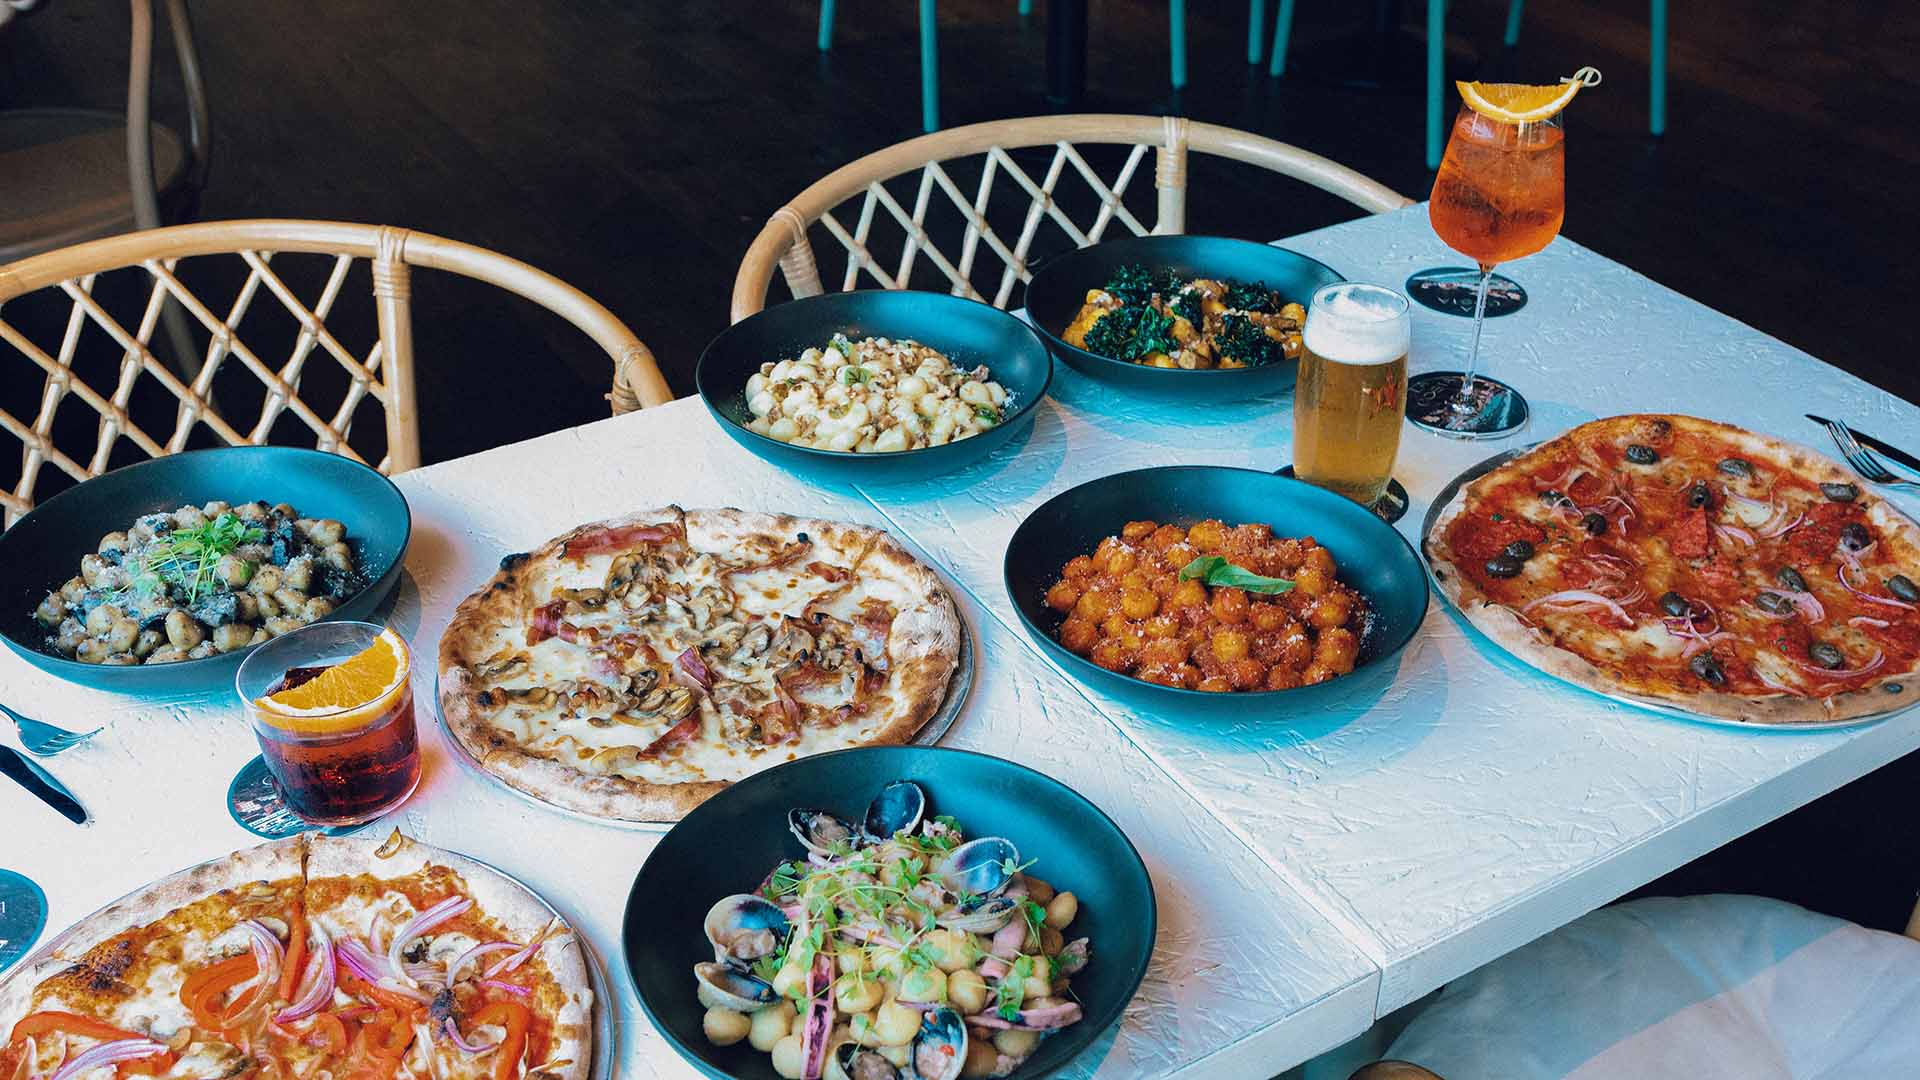 All-You-Can-Eat Gnocchi and Pizza Night